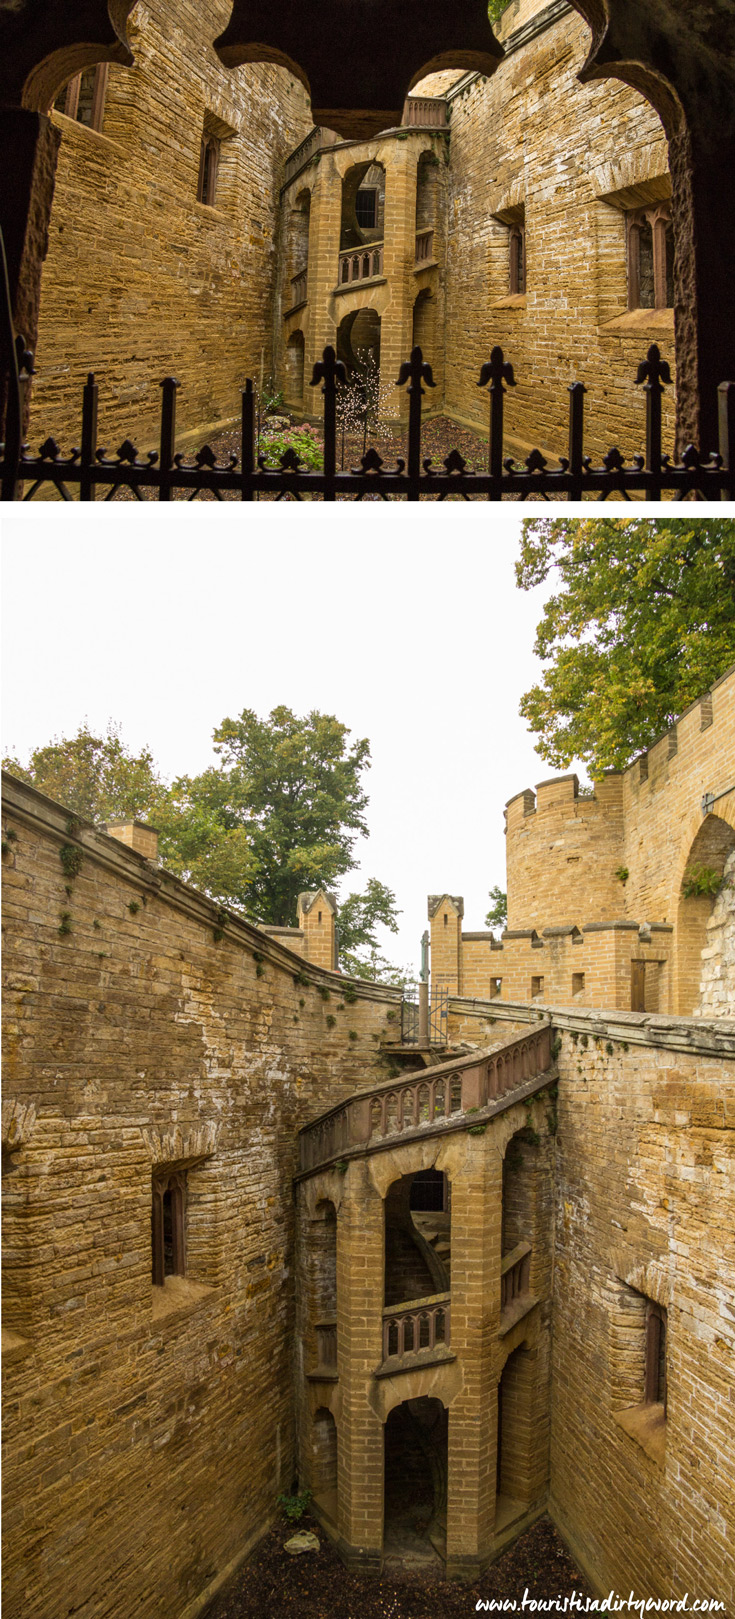 Ramp, interior courtyard of Burg Hohenzollern